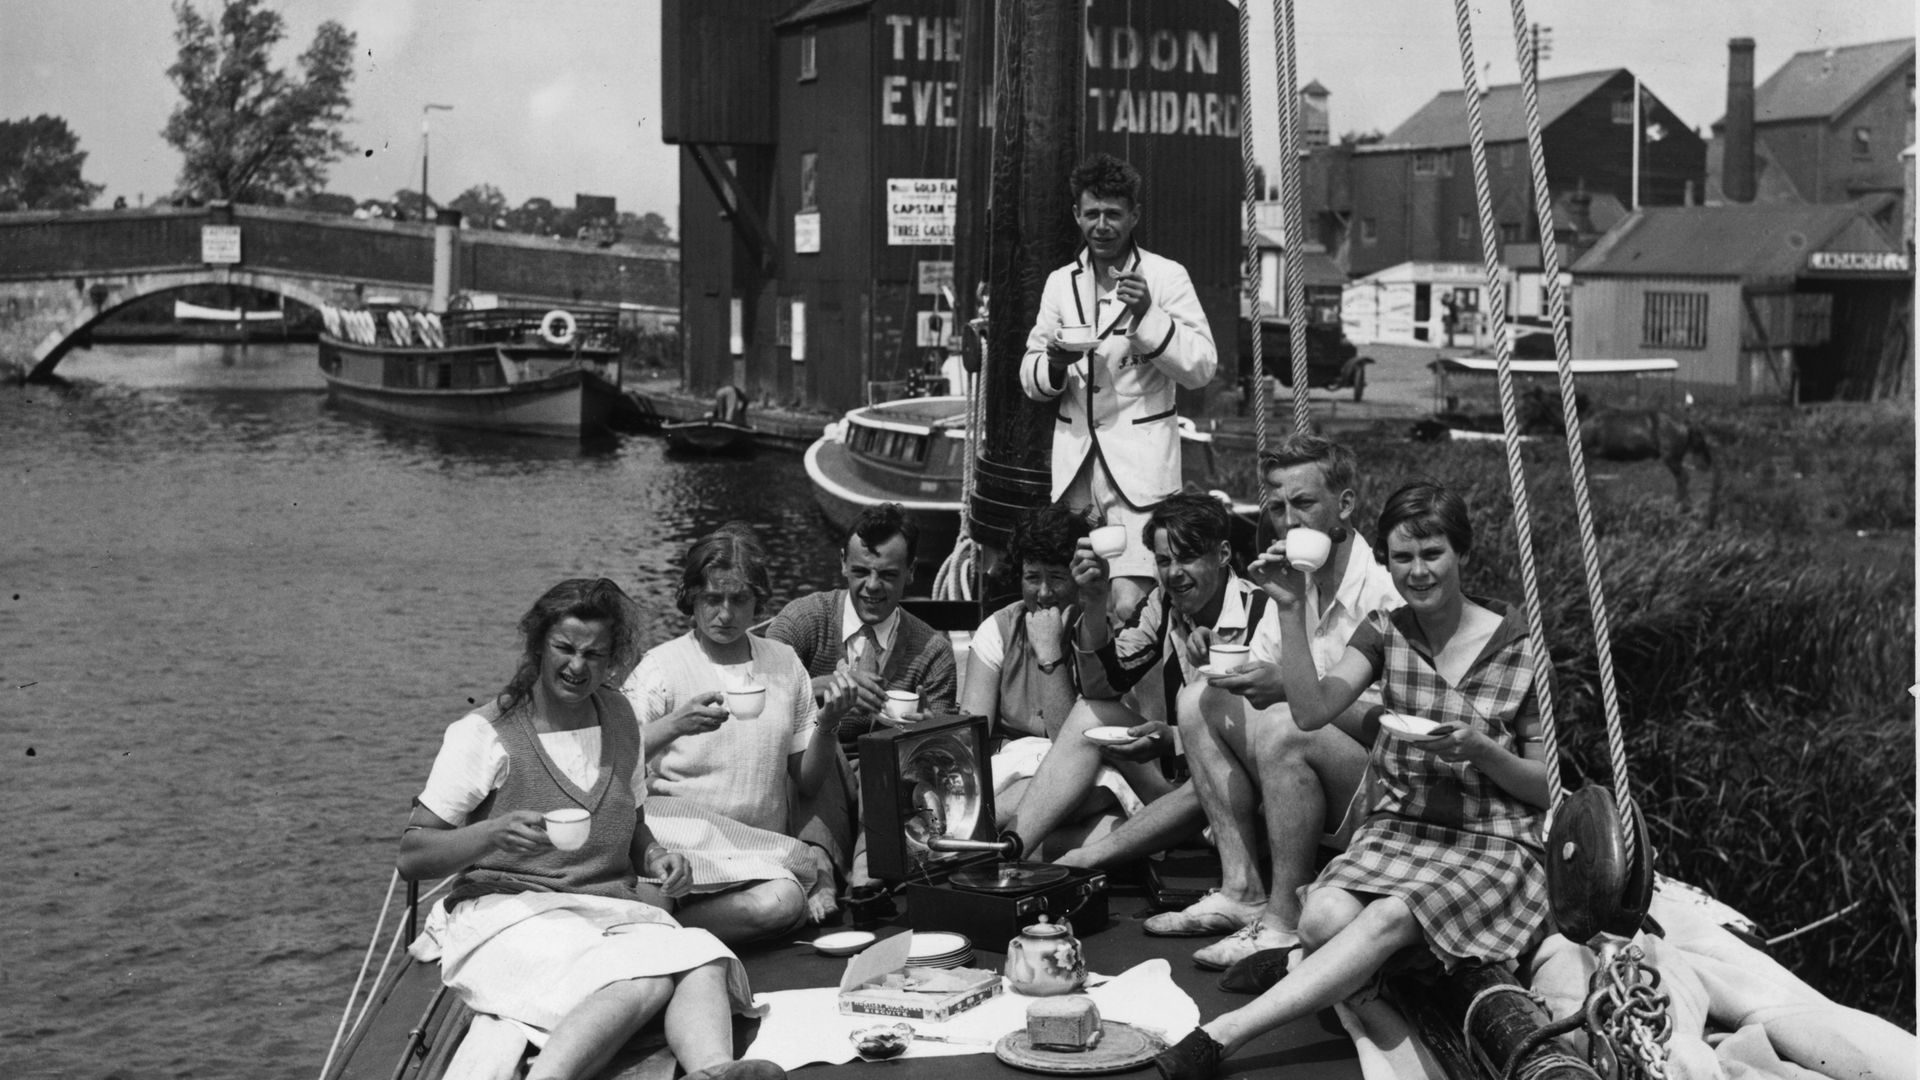 Messing about in 'boots' - holidaymakers relax on board their vessel in Peter's native Norfolk in 1926 - Credit: Getty Images